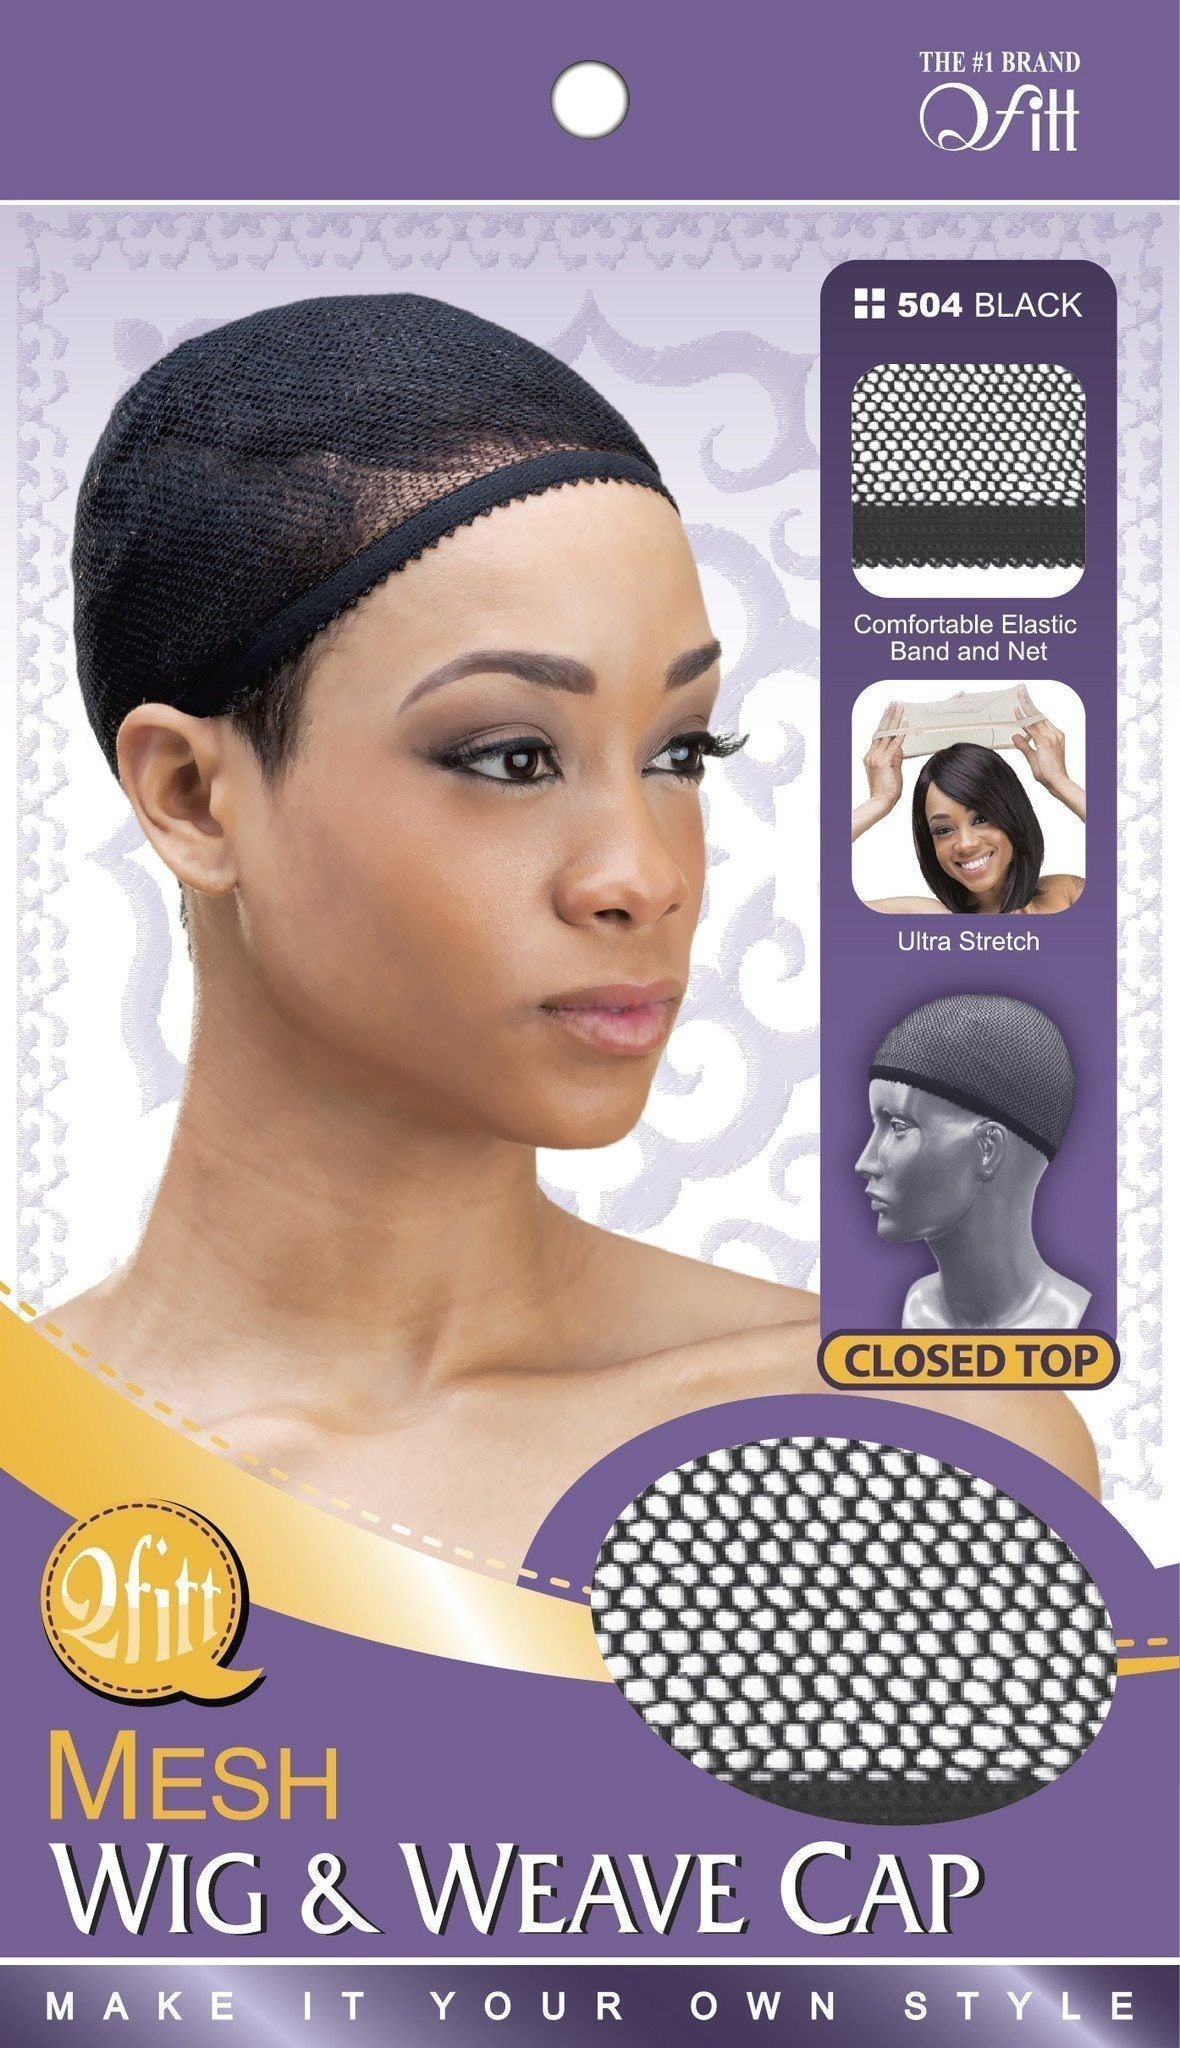 #504 Mesh Wig & Weave Cap Closed Top / Black